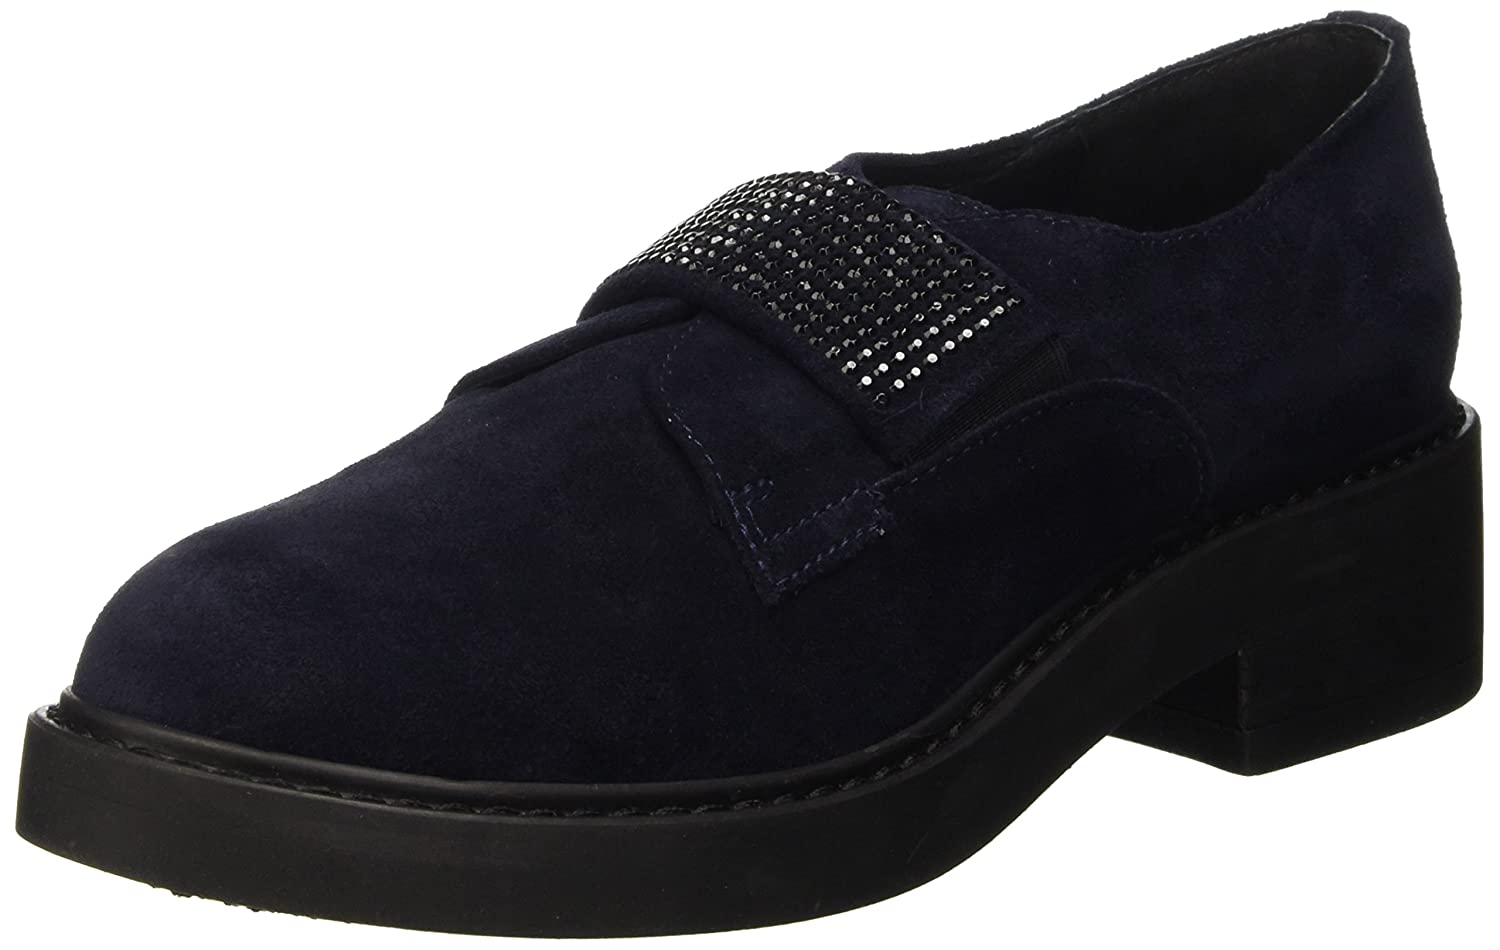 Manas Manas St.Jean, (Navy) Chaussures à Lacets Femme B07H7GXDR3 Bleu (Navy) 26505f3 - avtodorozhniks.space